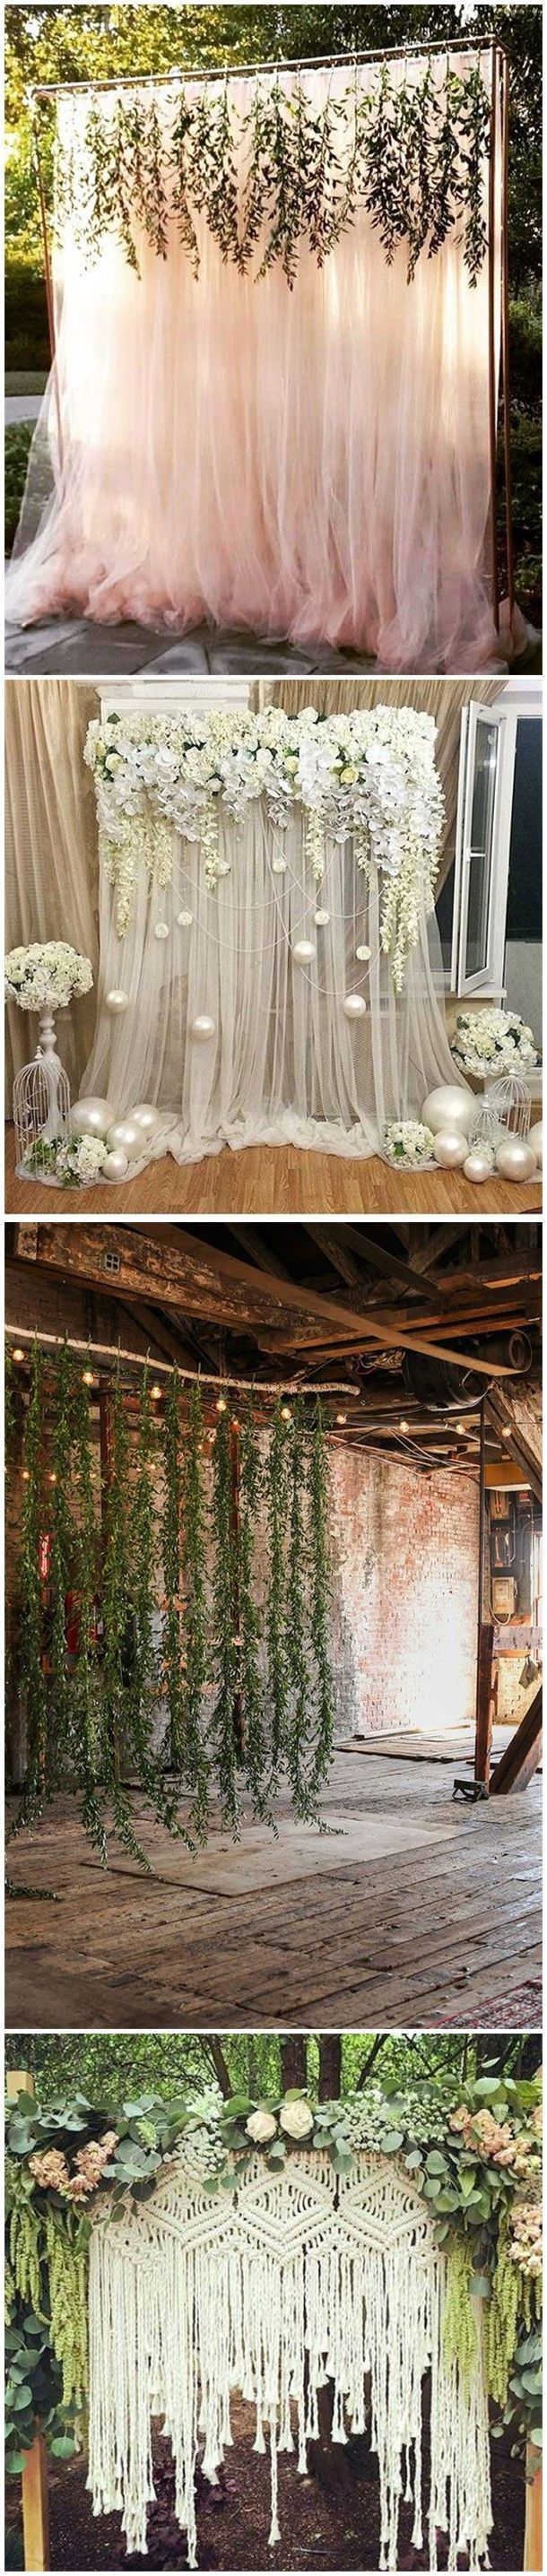 wedding decorations backdrop 30 unique and breathtaking wedding backdrop ideas 9081